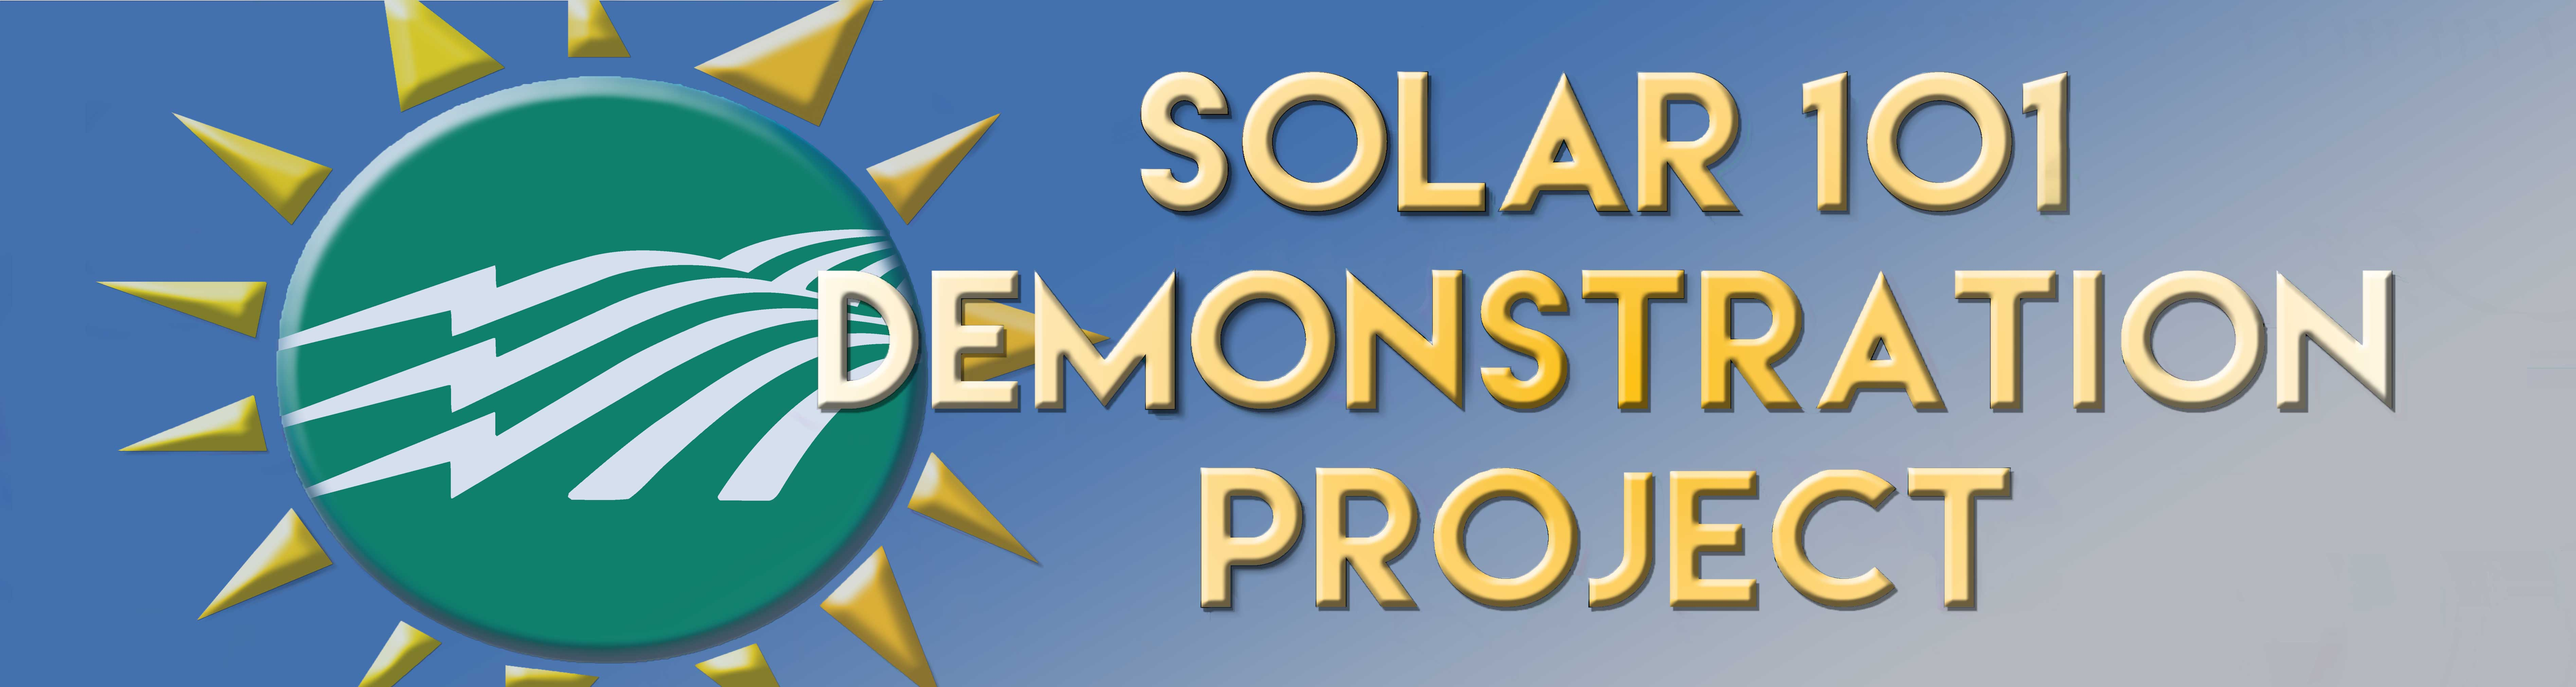 Solar 101 Demonstration Project logo